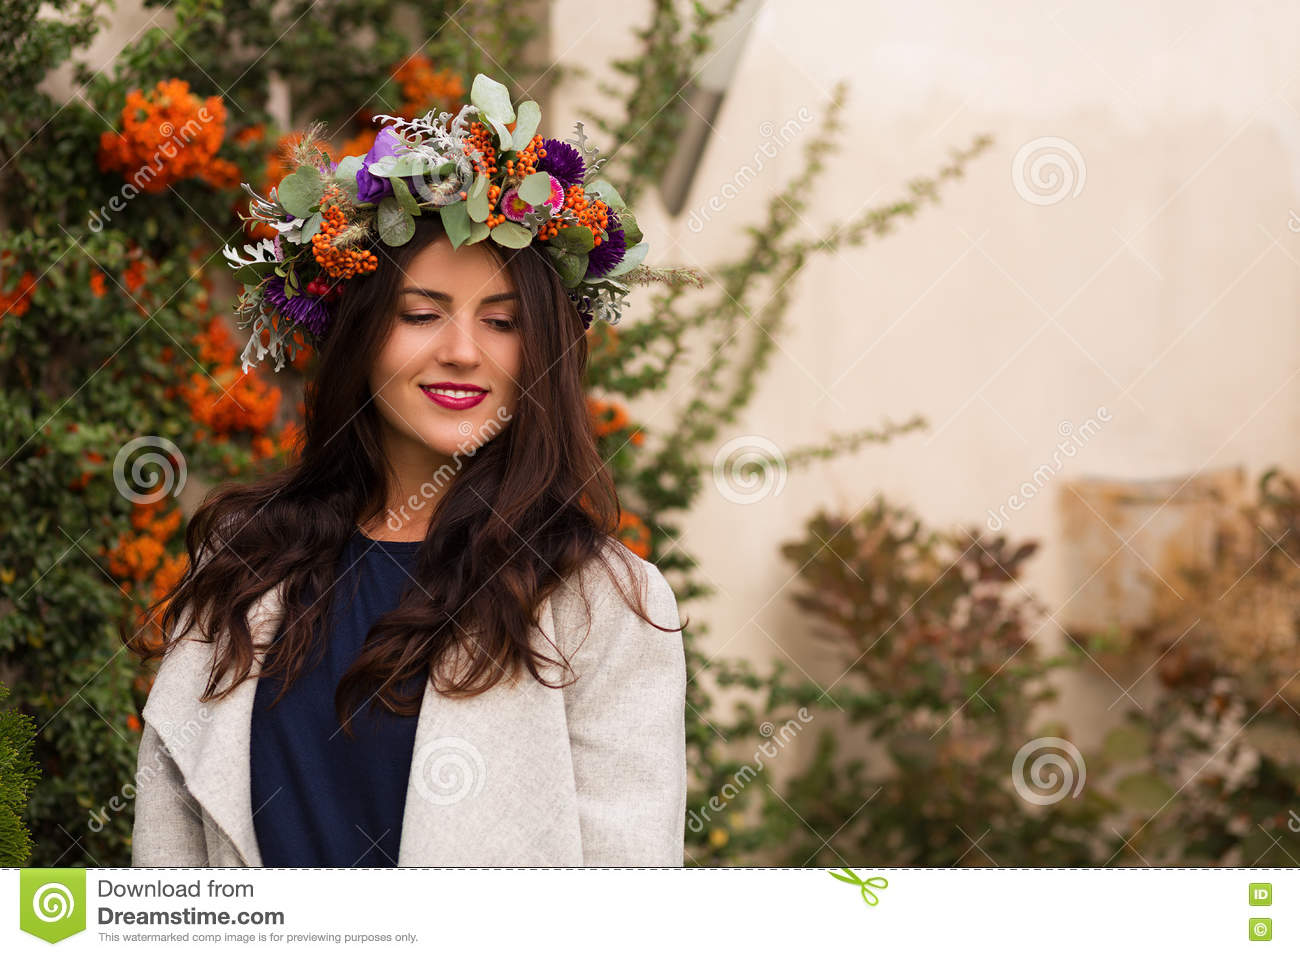 Pretty Woman In A Flower Crown Stock Photo Image Of Garden Chic